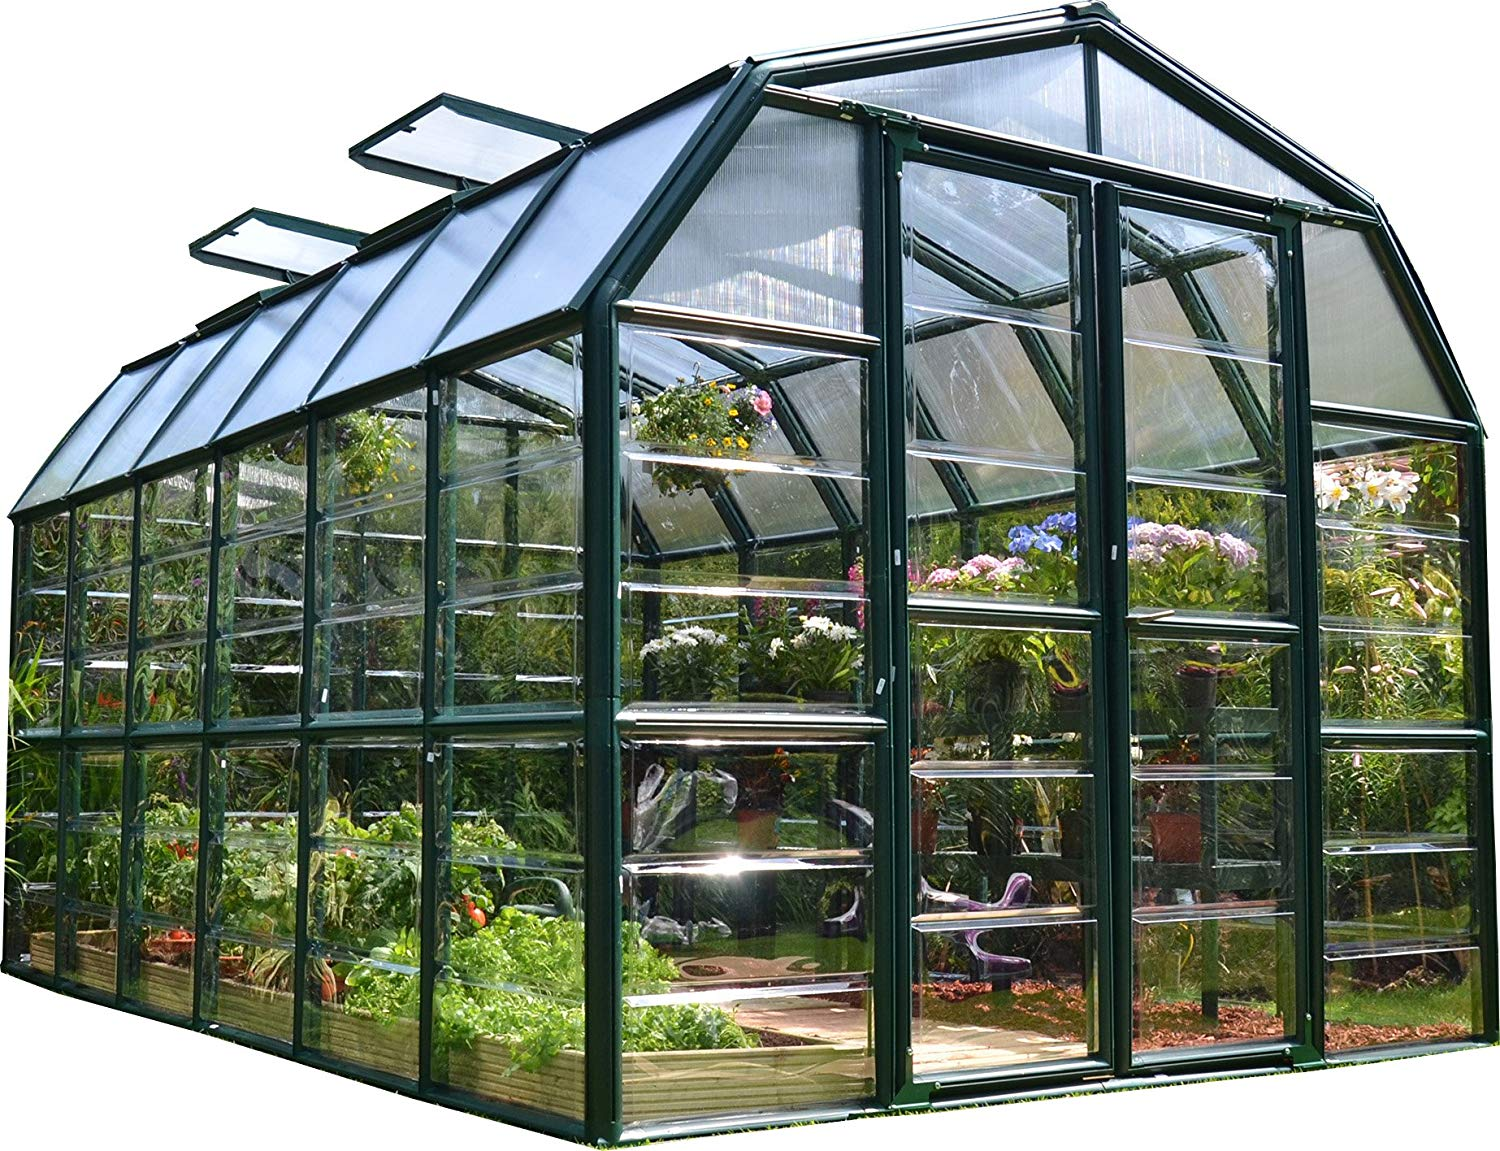 rion grand gardener 2 clear greenhouse 8 x 12